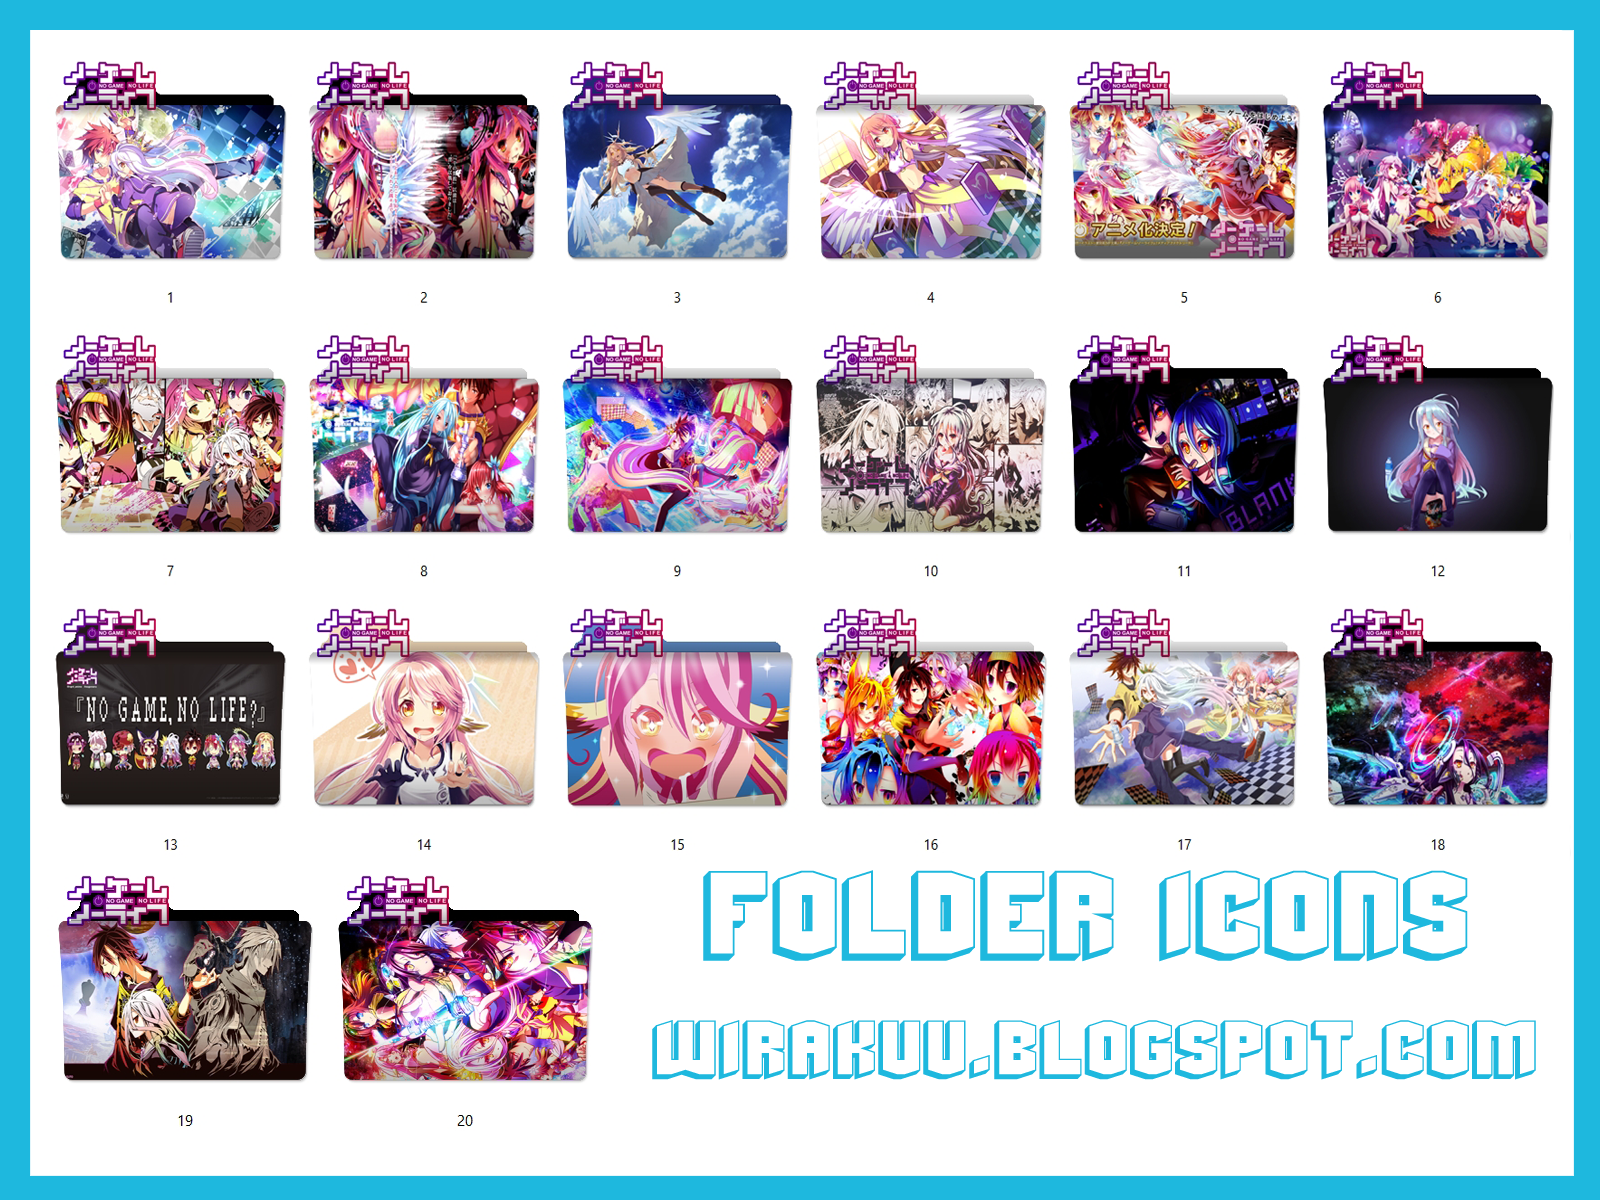 Folder Icons Anime No Game No Life